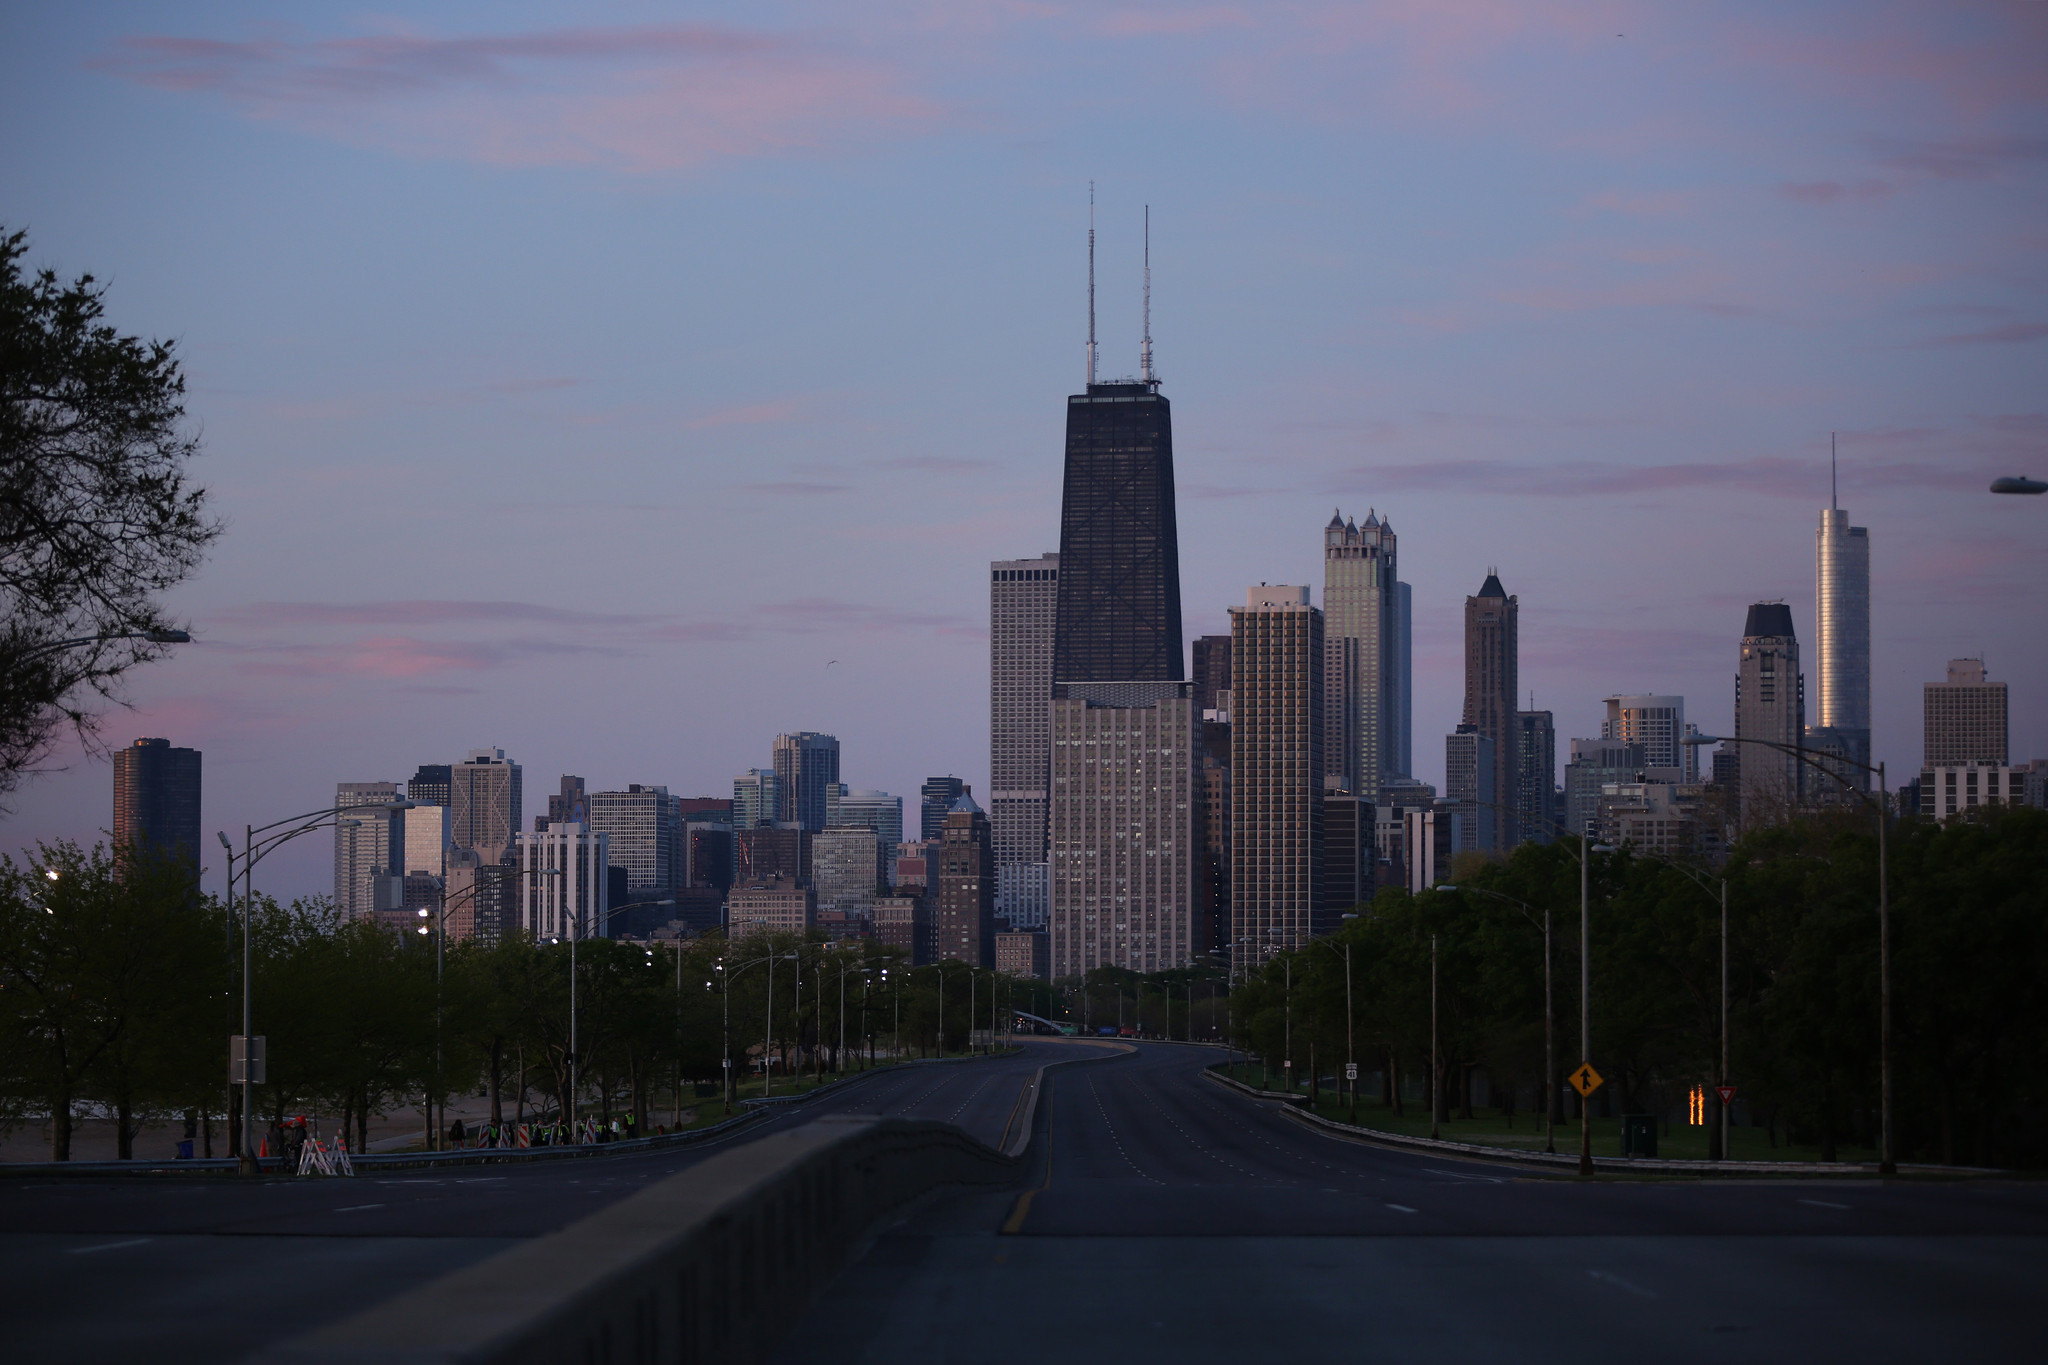 Drive from chicago